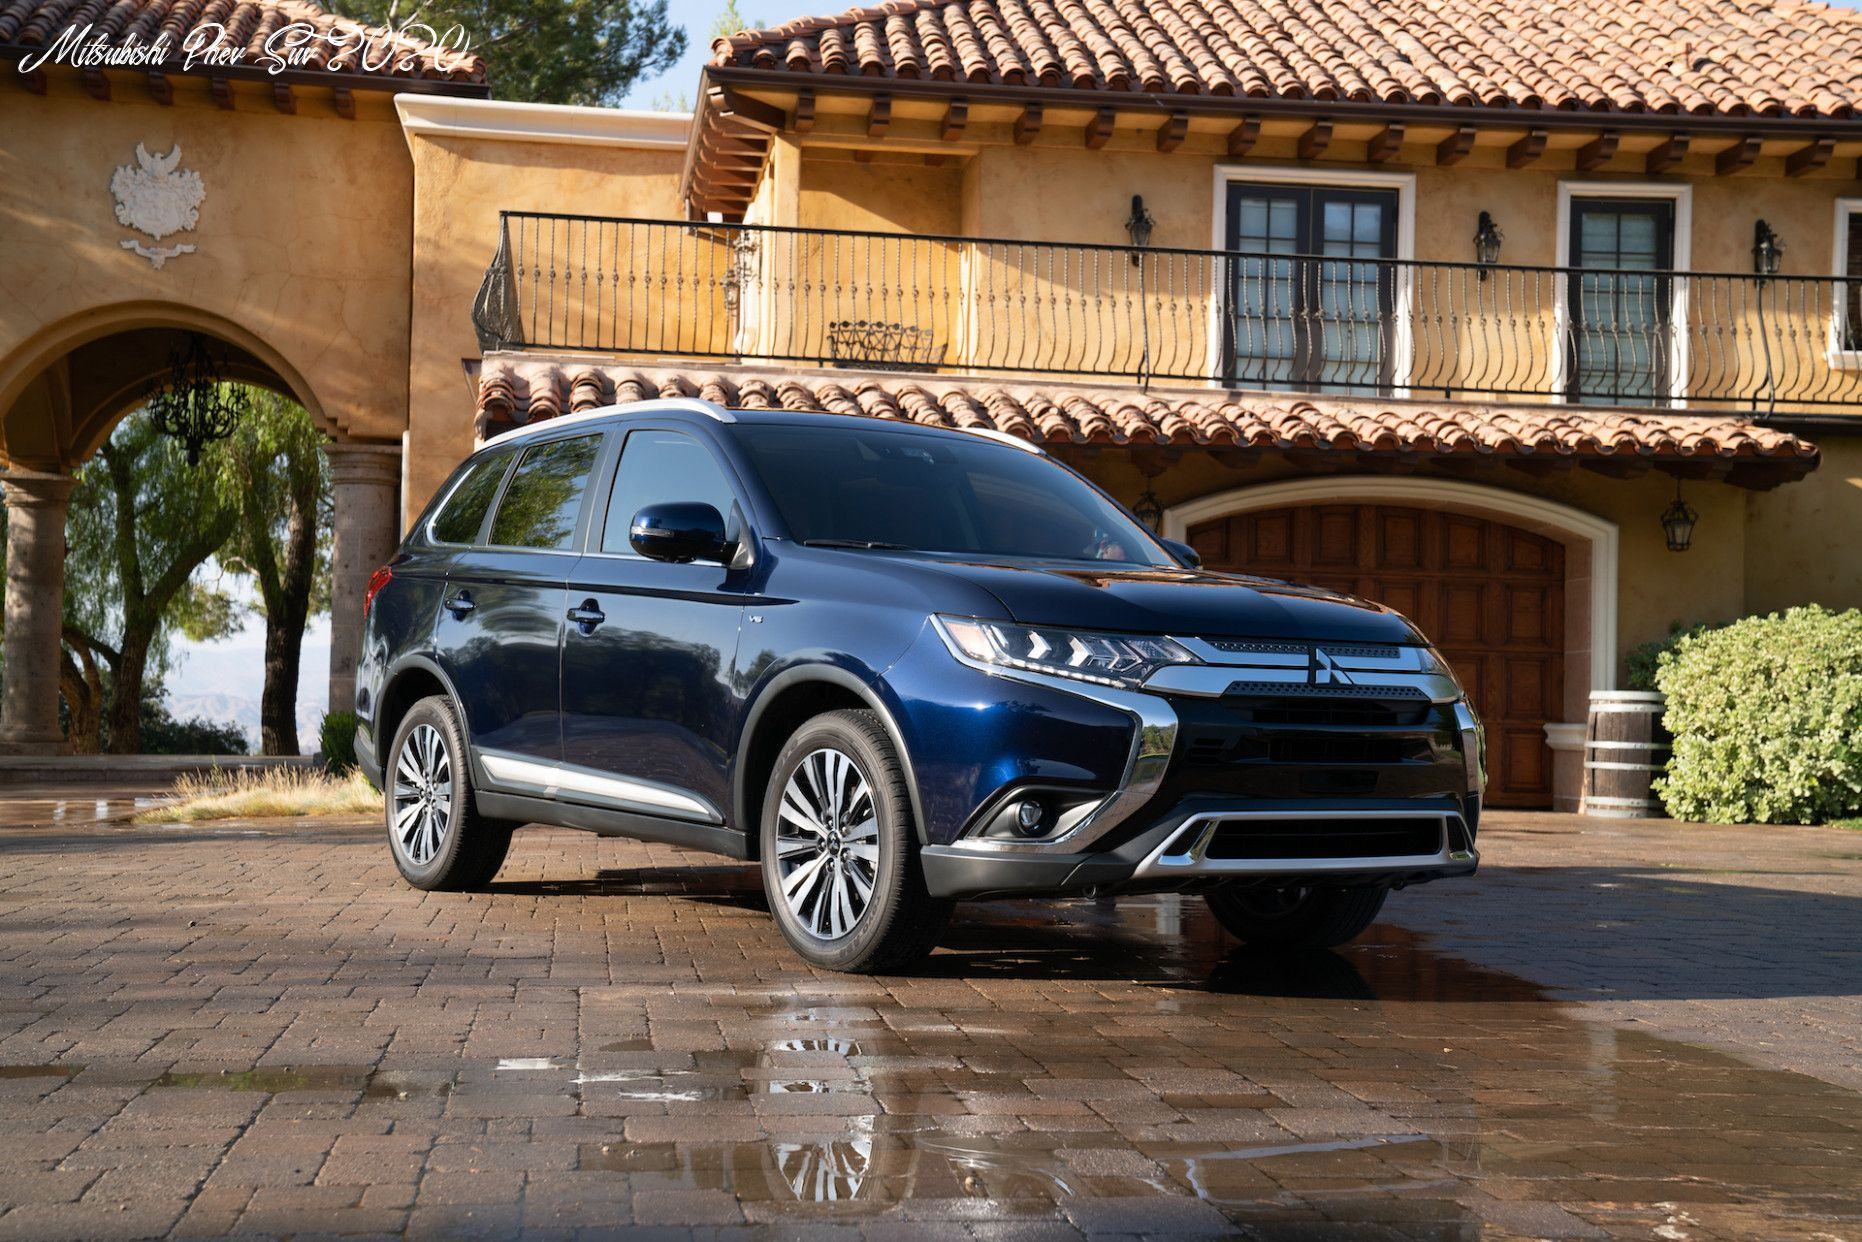 Mitsubishi Phev Suv 2020 Review And Release Date In 2020 Car Review Release Date Mitsubishi